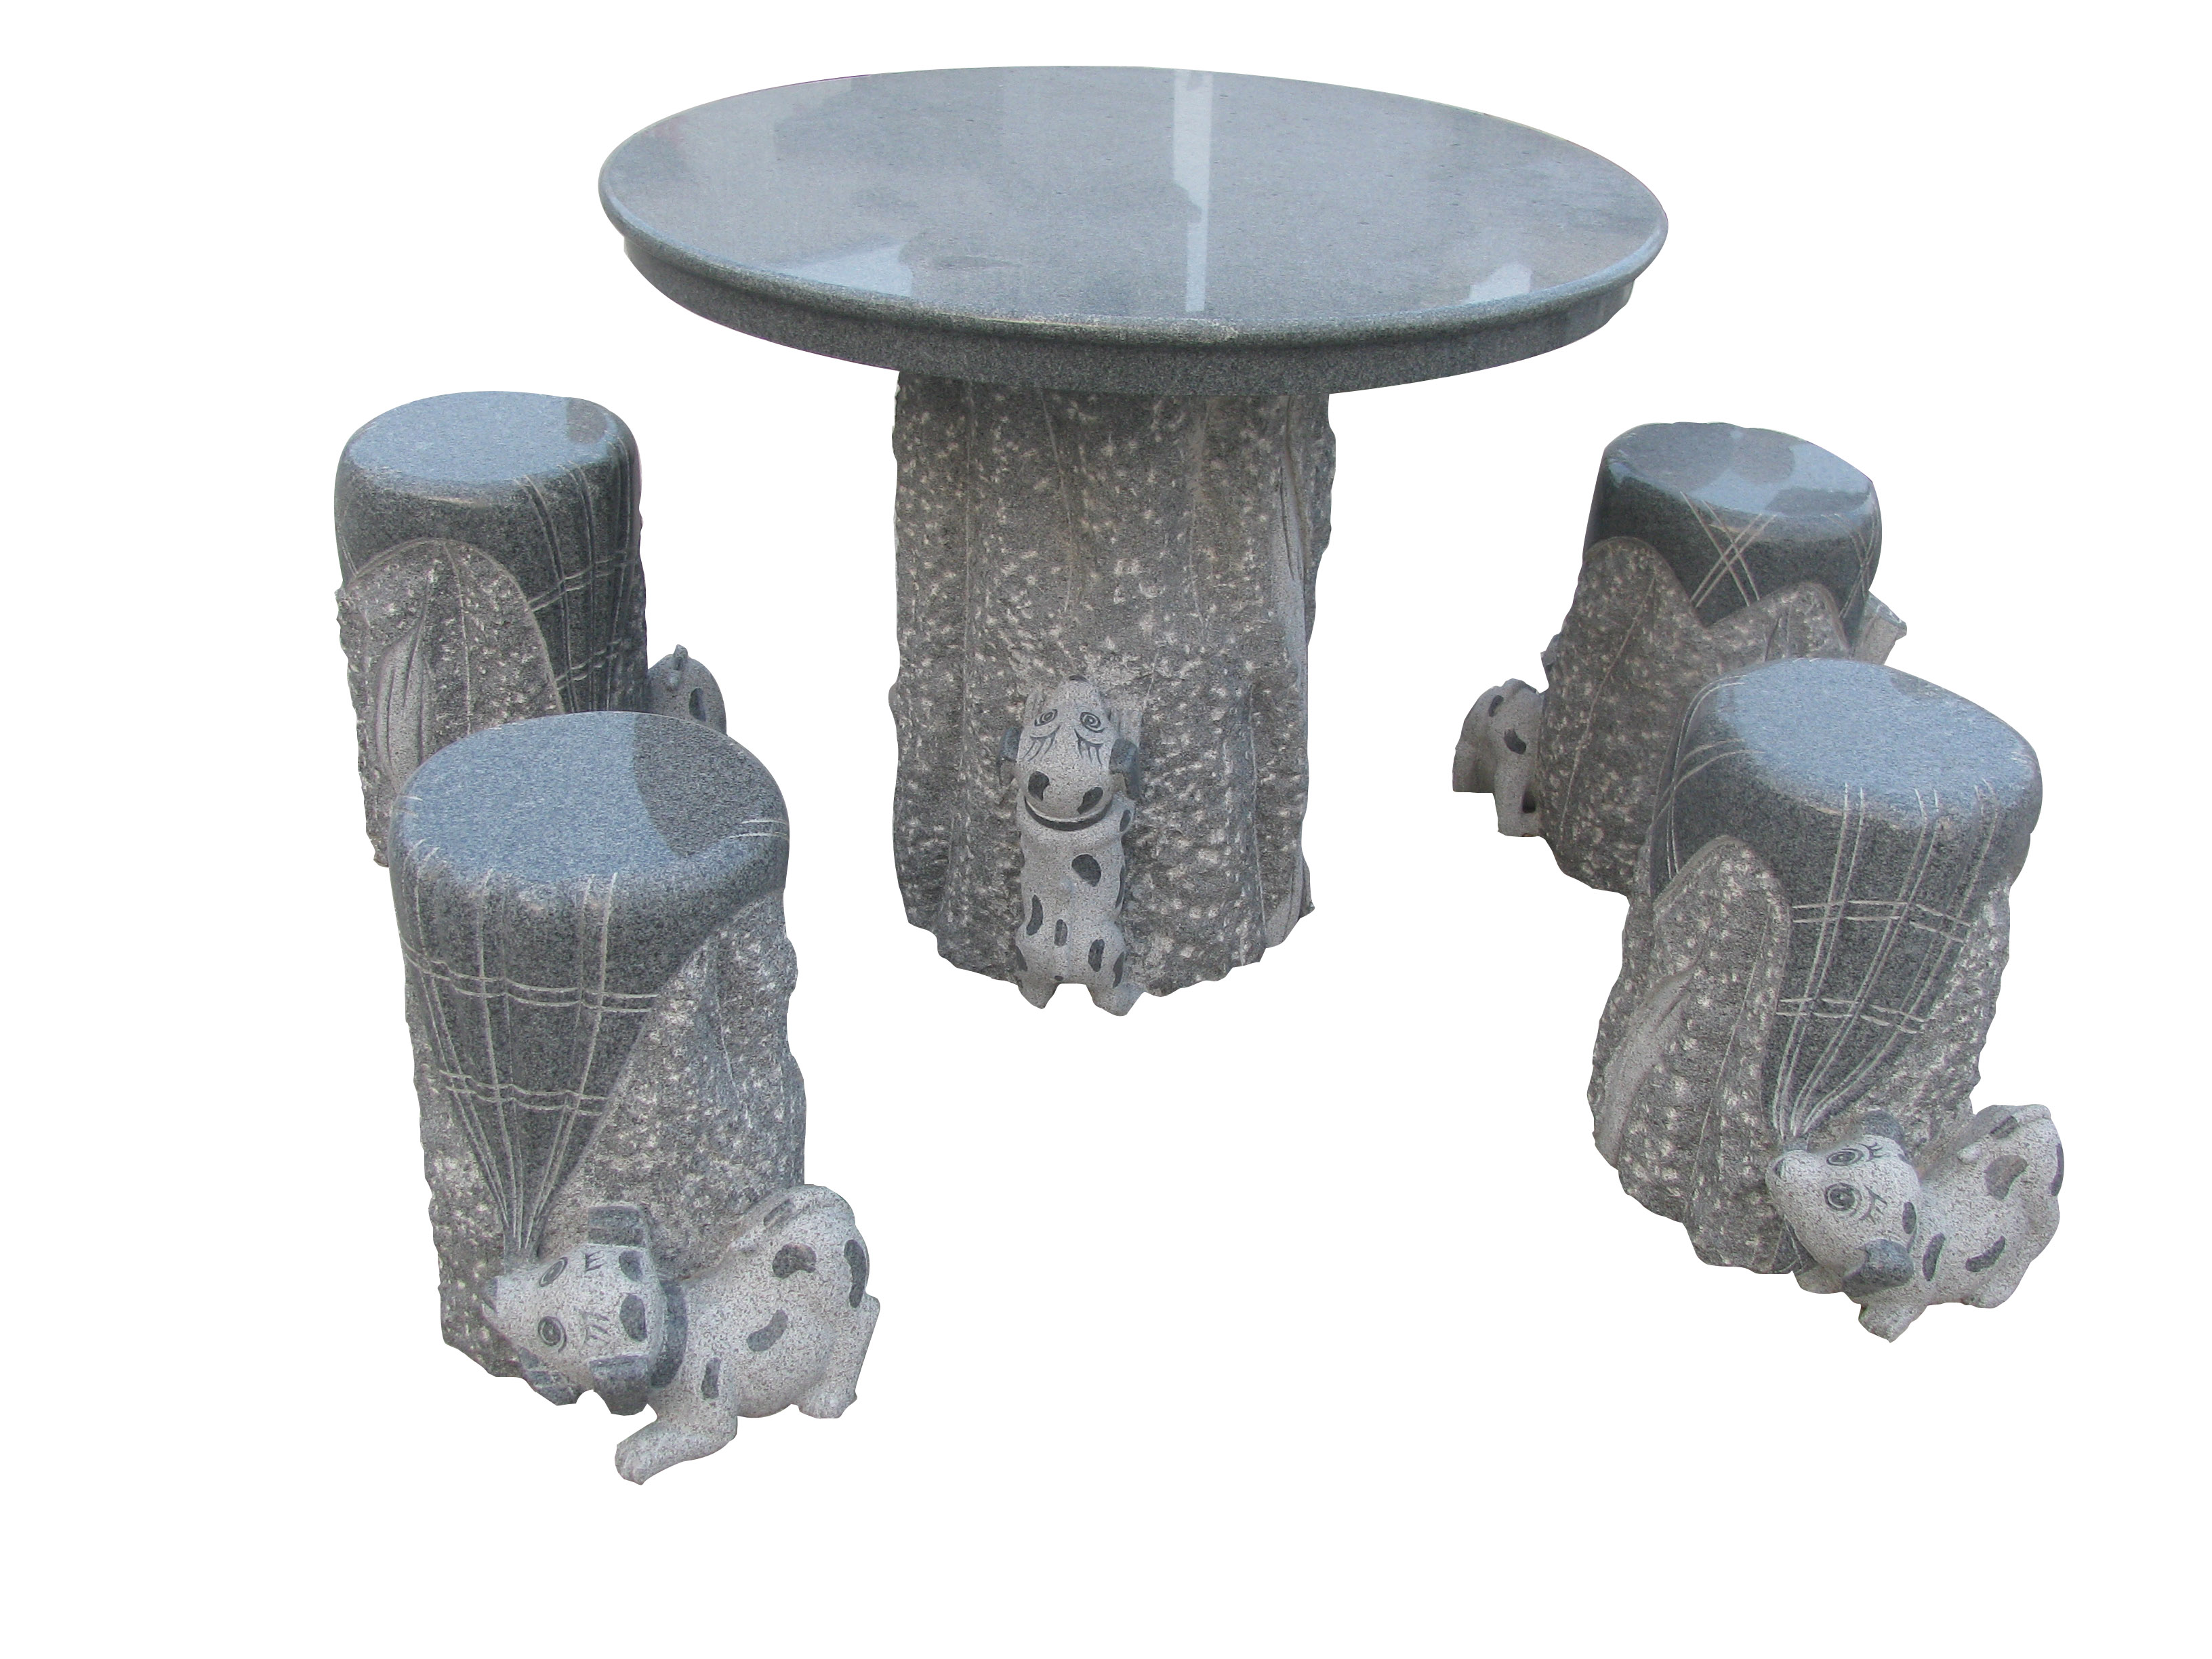 Stone Table and Stone Chairs